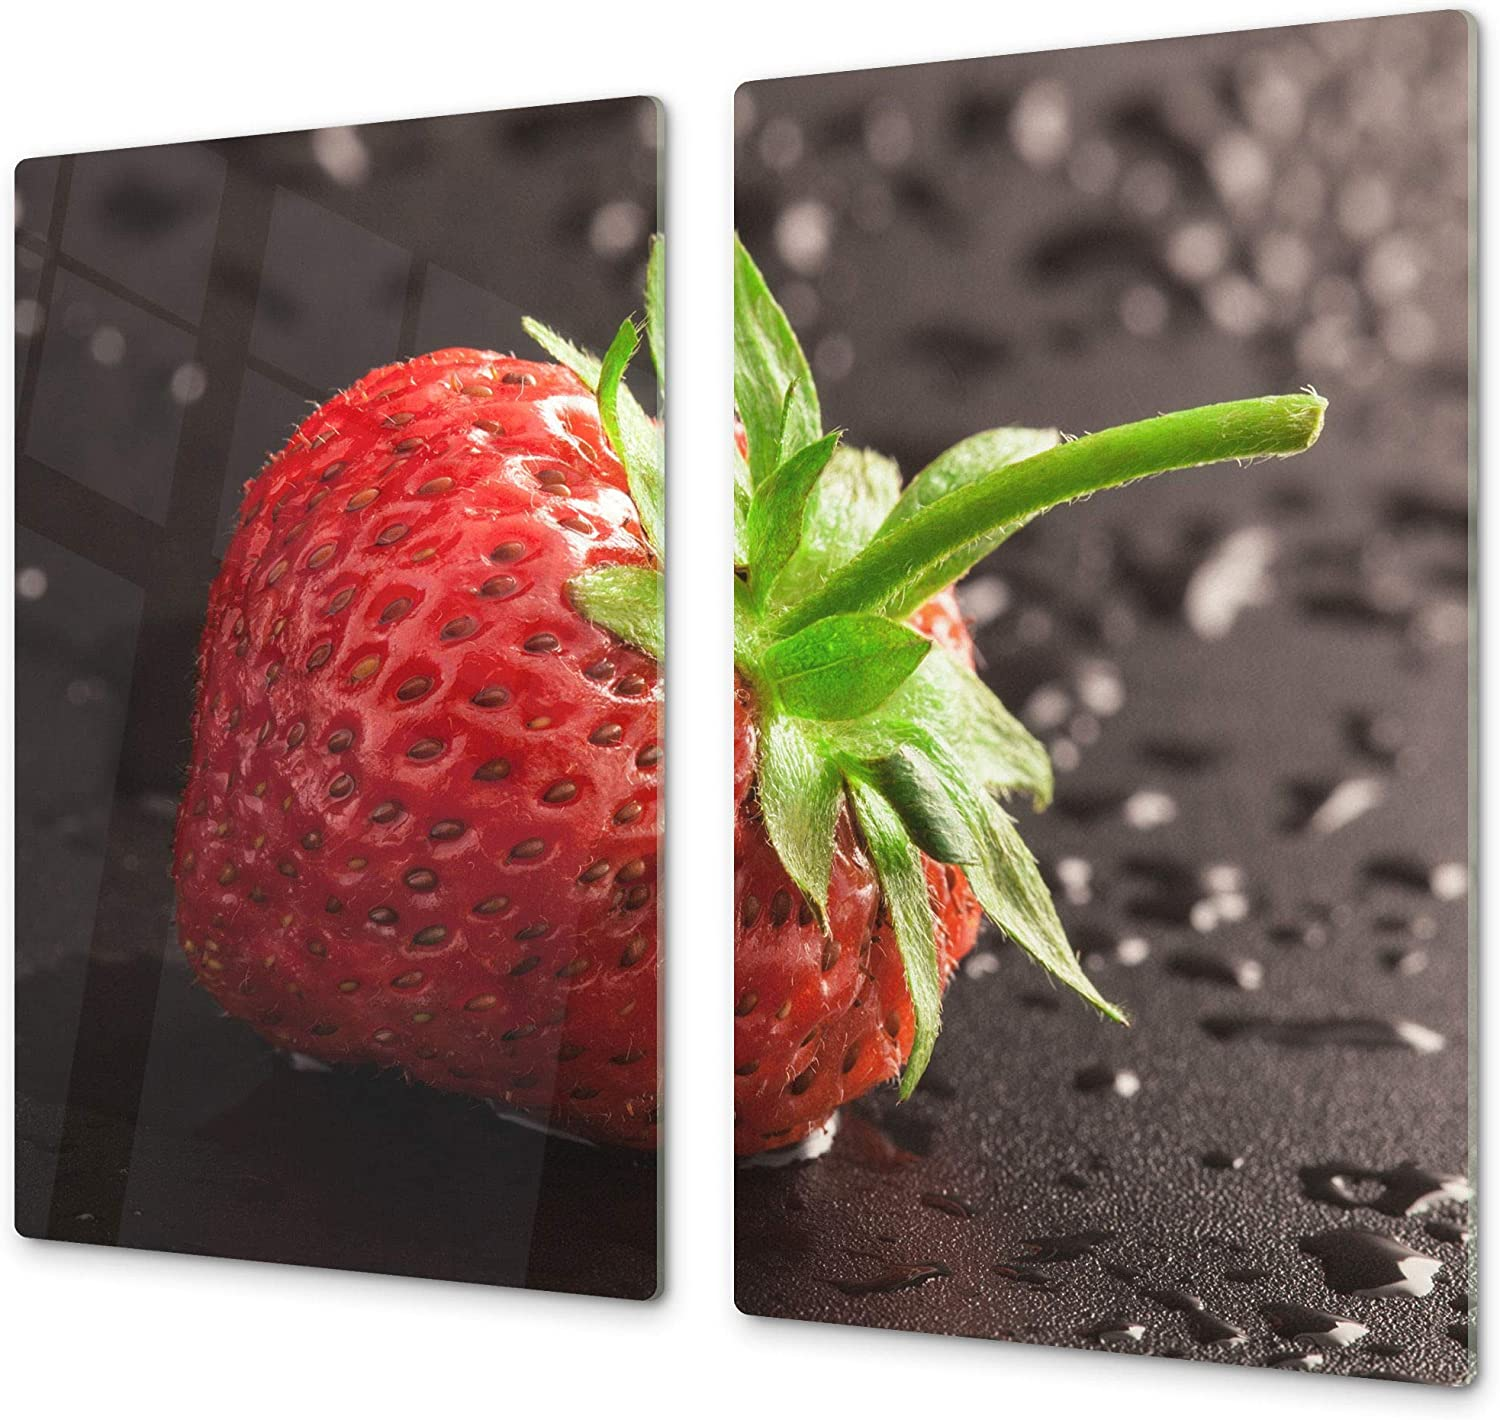 """KITCHEN BOARD & Induction Cooktop Cover – Glass Pastry Board; MEASURES: SINGLE: 23,62"""" x 20,47""""; DOUBLE: 2x 11,81"""" x 20,47""""; D07 Fruits and vegetables: Strawberry 19"""